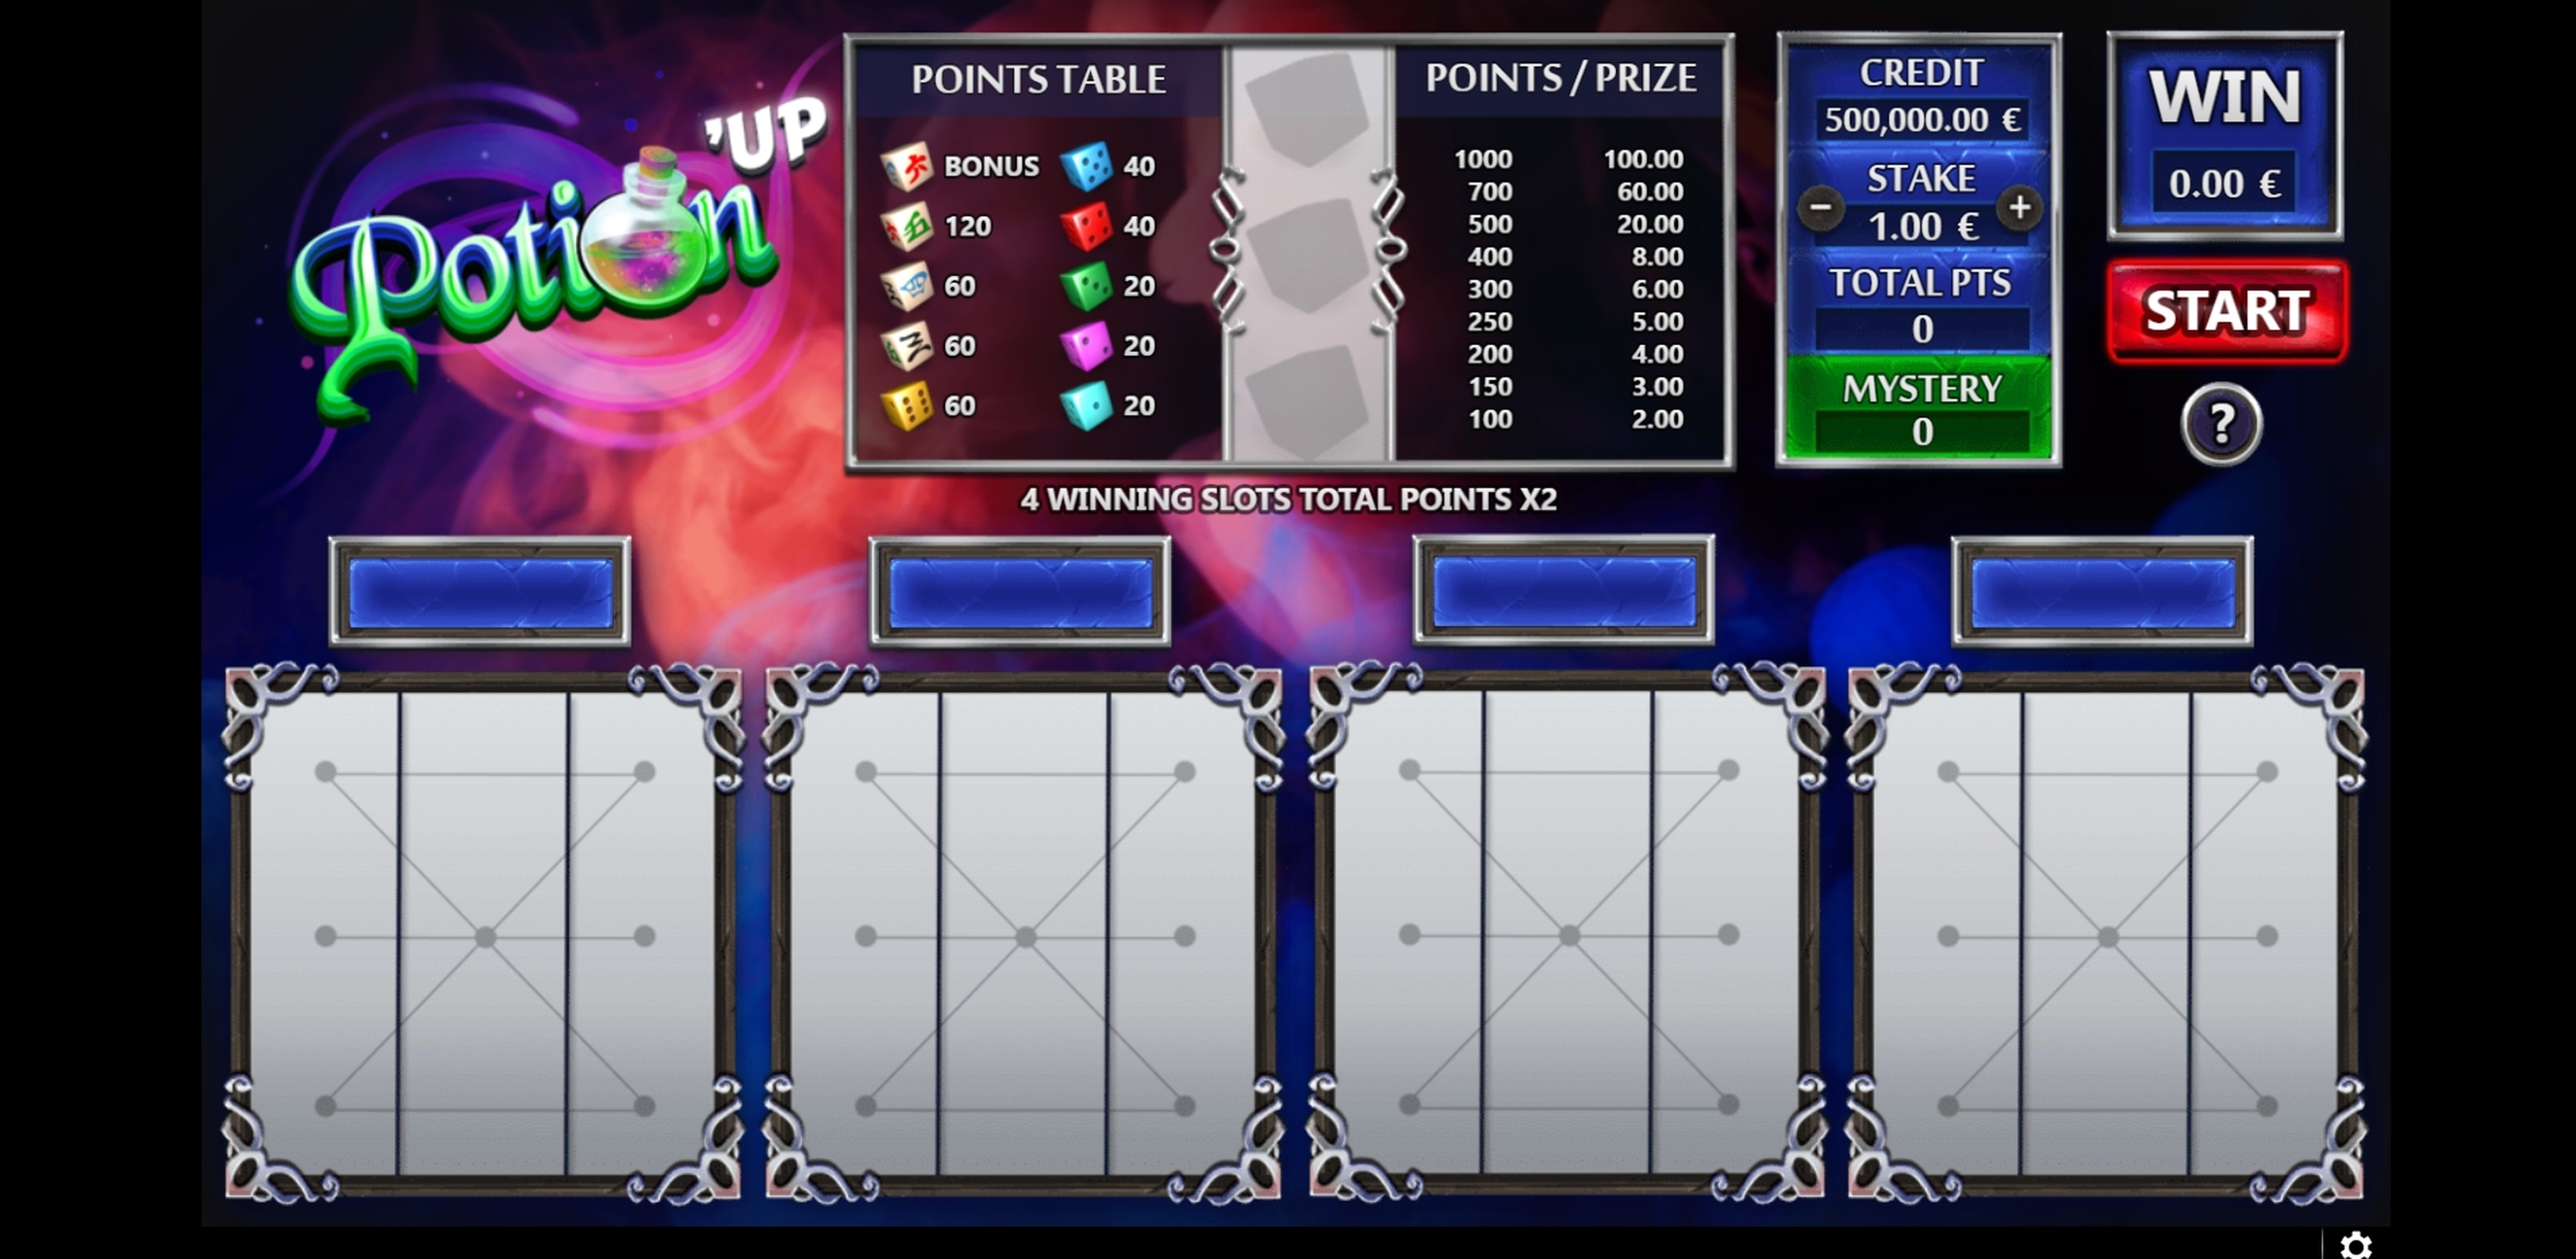 Reels in Potion UP Slot Game by GAMING1